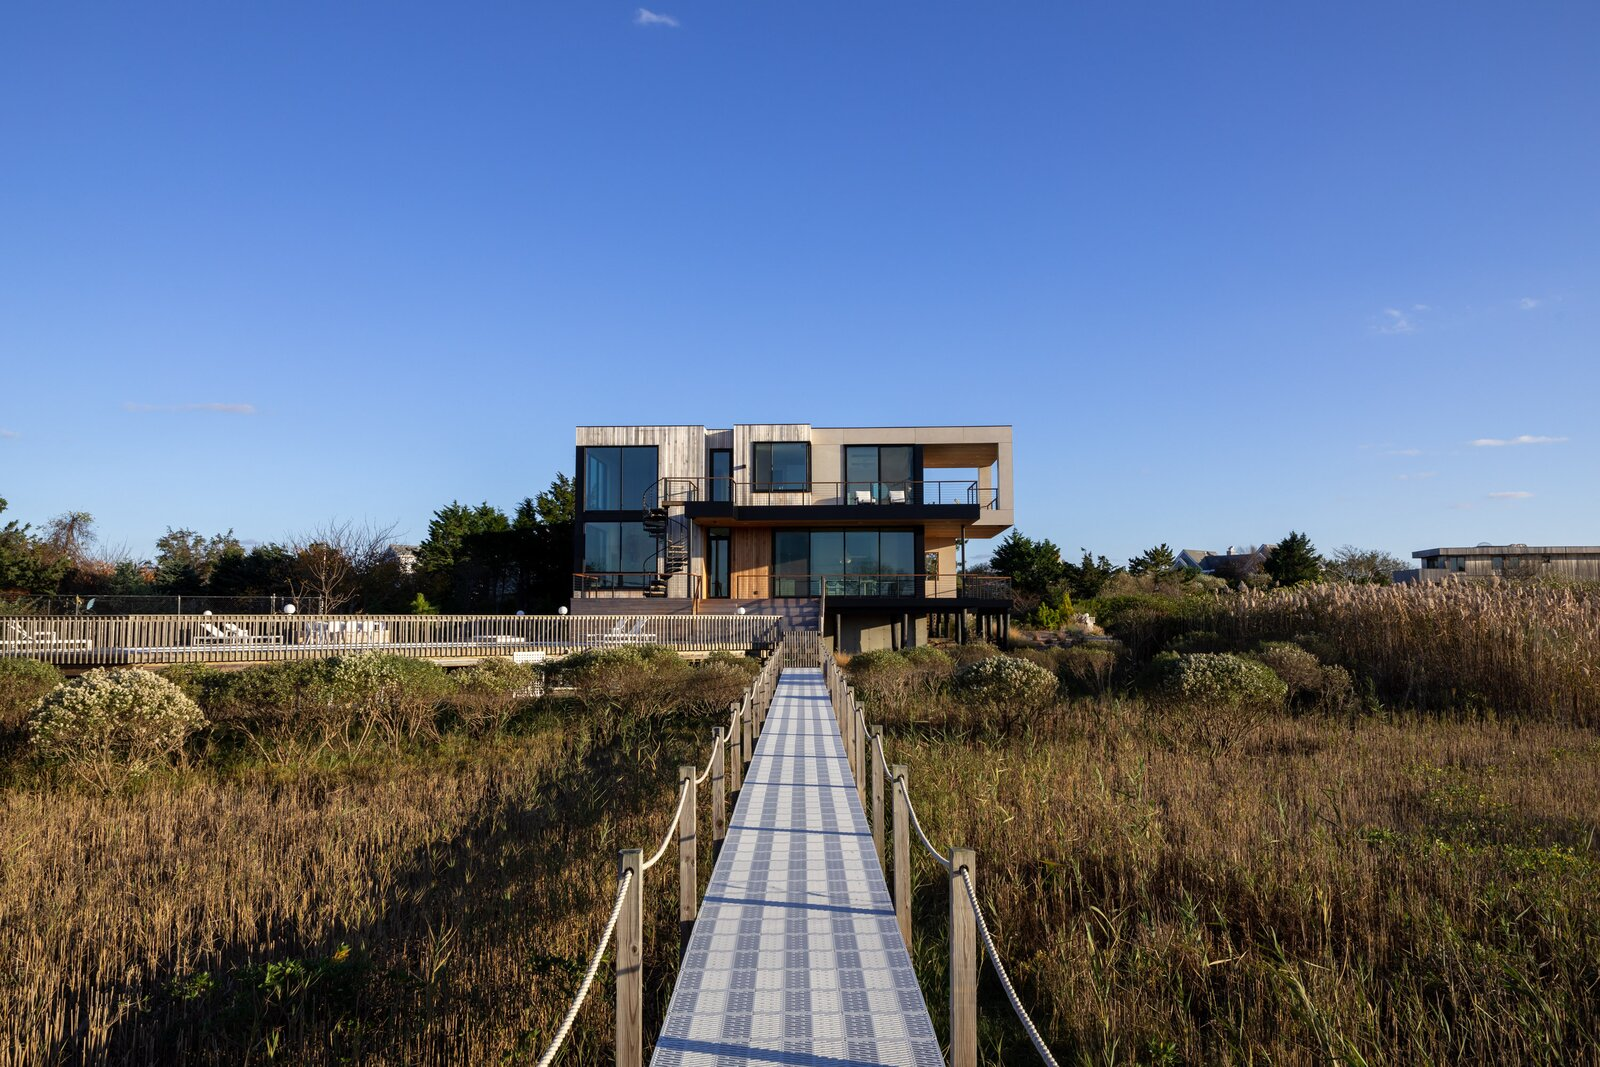 Exterior, Wood Siding Material, Glass Siding Material, Flat RoofLine, and Beach House Building Type Located in Westhampton Beach on New York's Long Island, this recently built home by Josh Manes Architecture is surrounded by preserved wetlands. The house is powered by a solar array on the rooftop while expansive windows, along with cantilevers and recessed sections, address solar heat gains.  Photo 1 of 11 in A New Eco-Friendly Home Emerges From a Tired Structure on Long Island's Wetlands